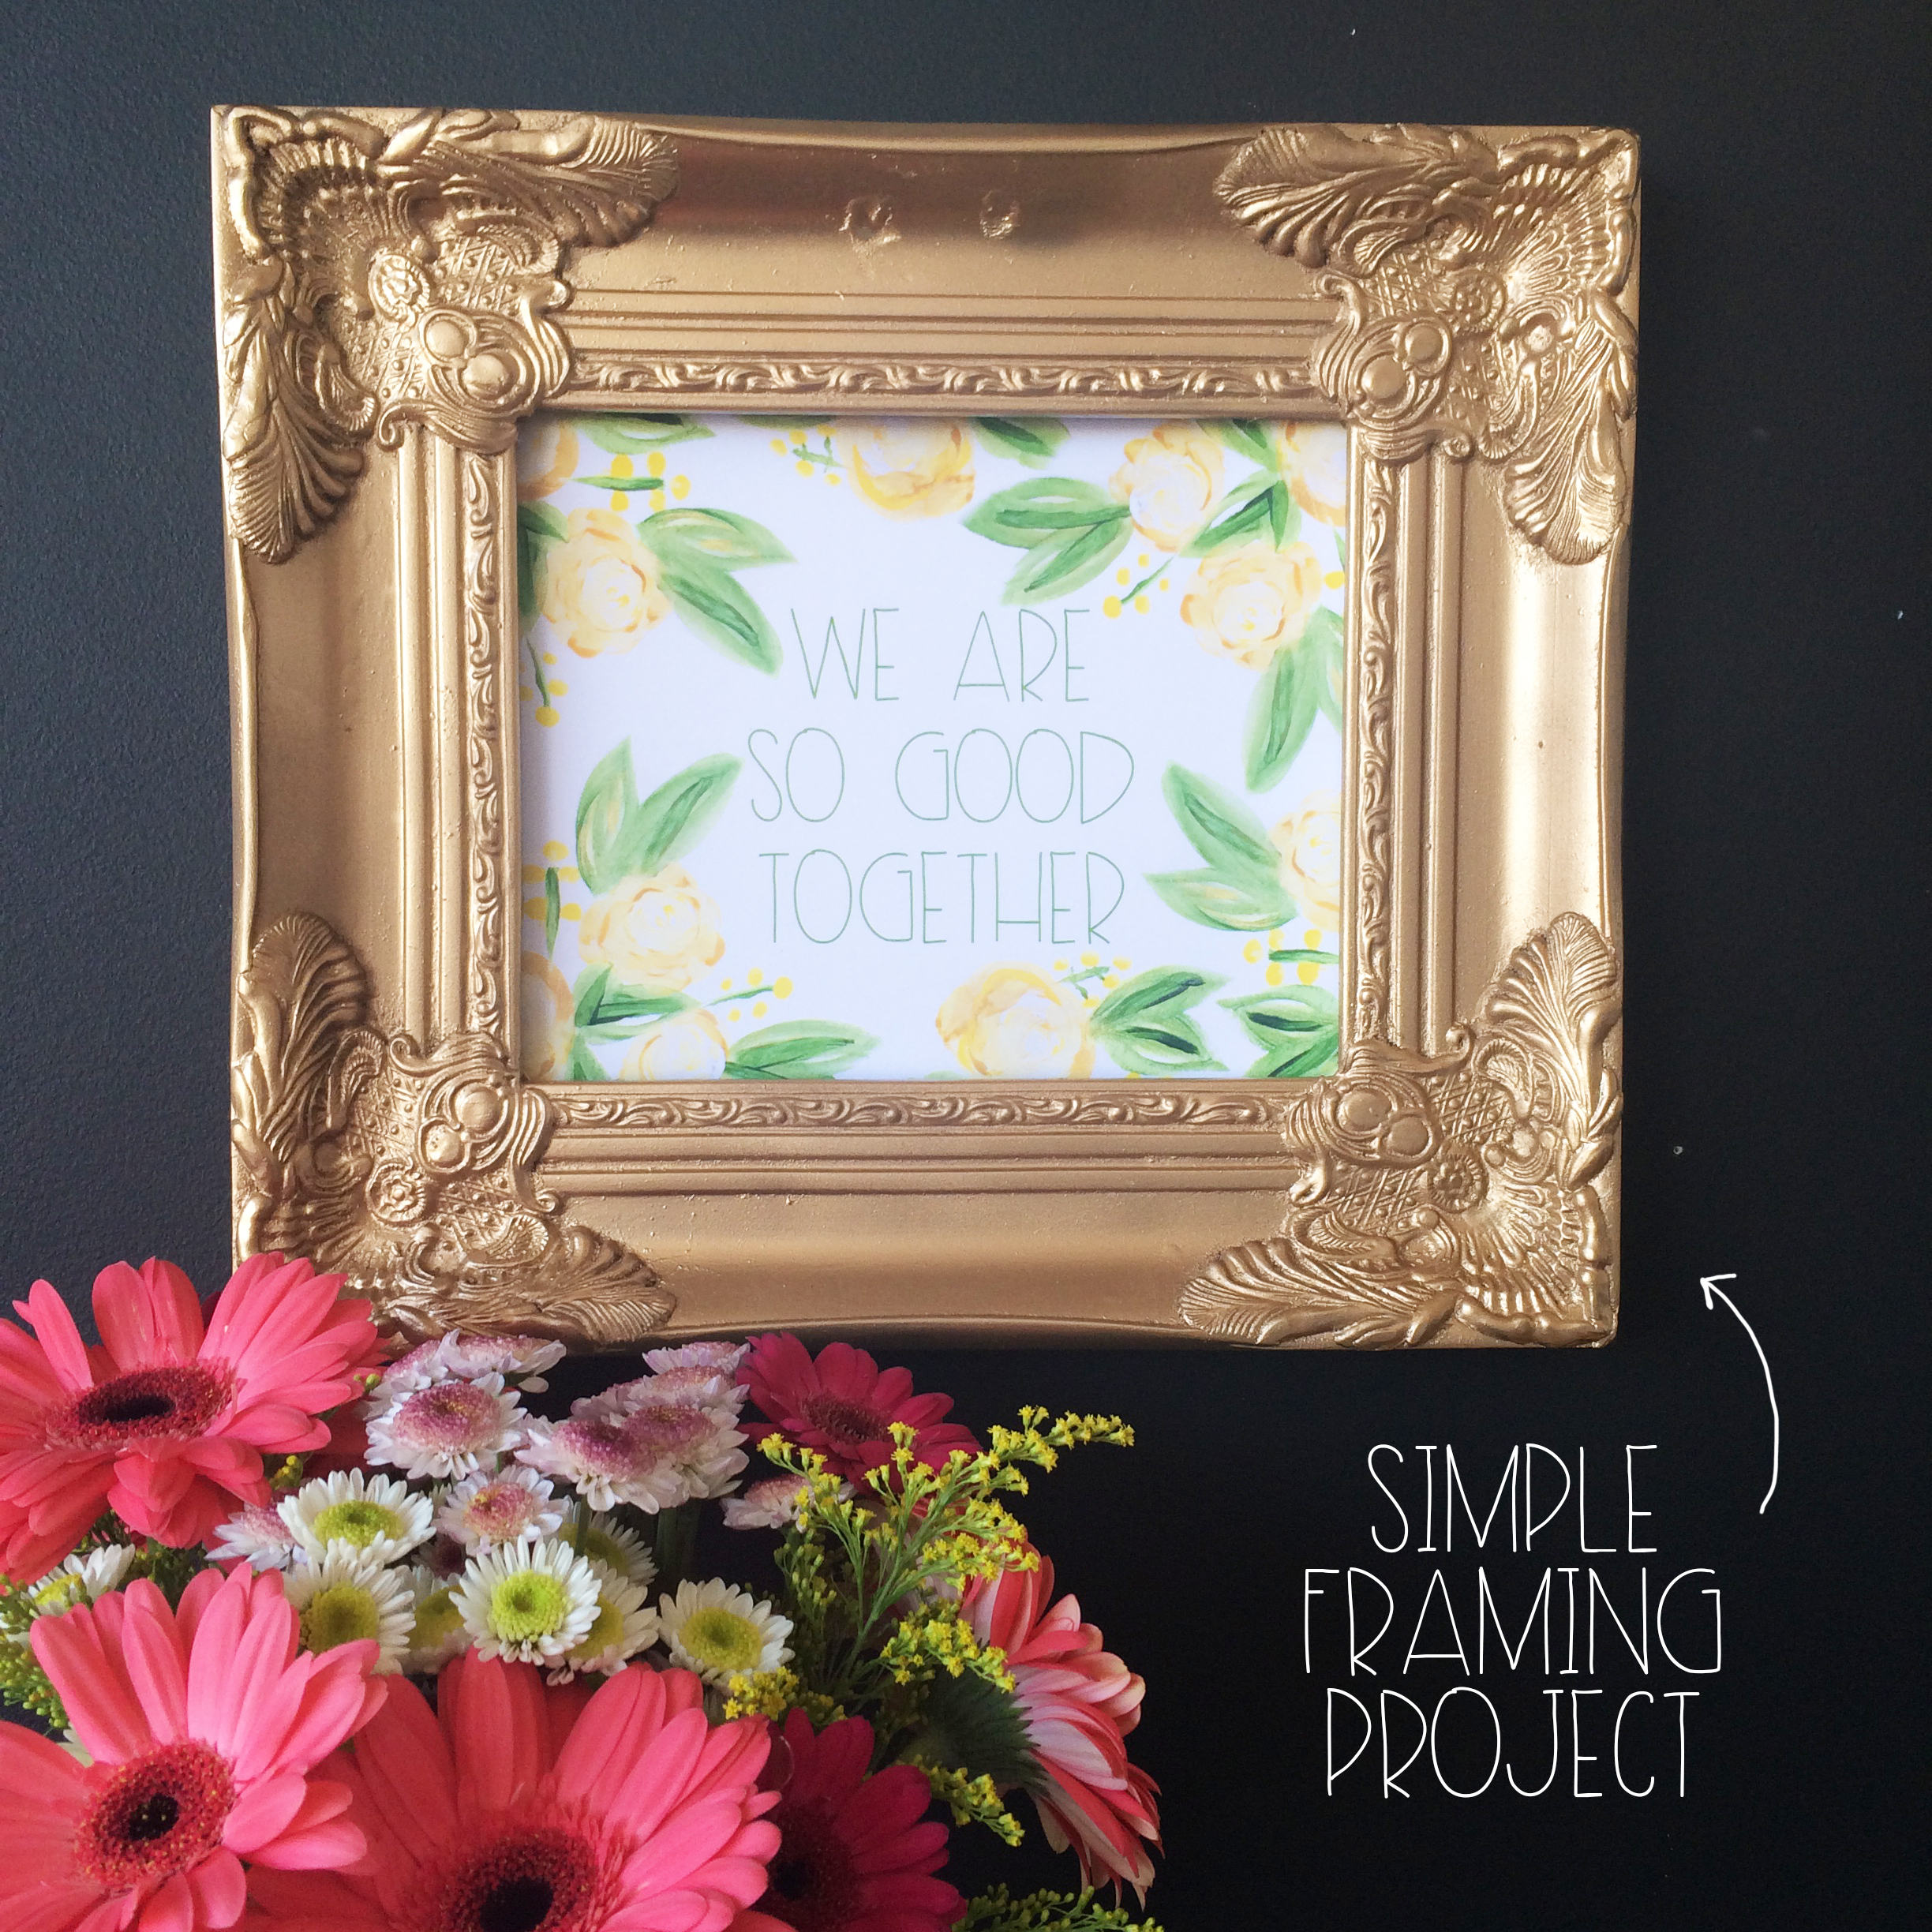 Simple Framing Project | MrsAmberApple